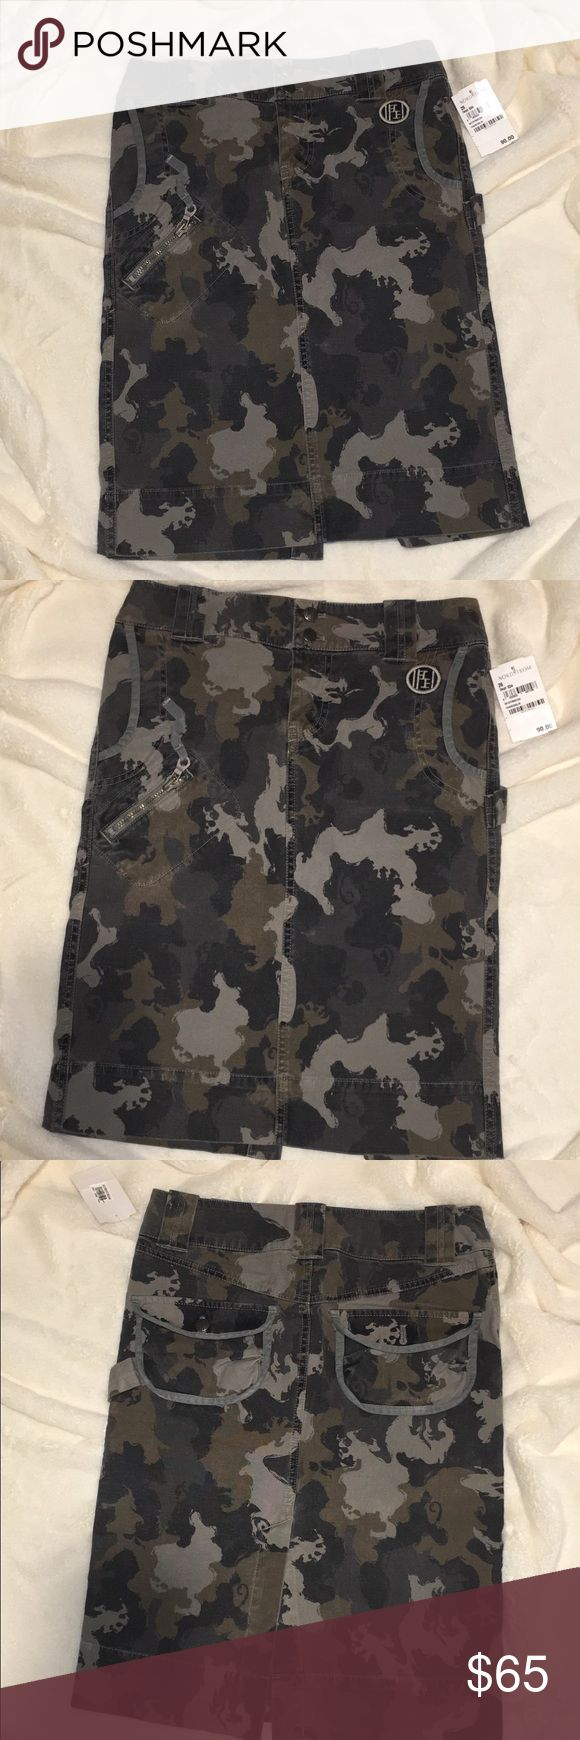 "RARE NWT DIESEL CAMOUFLAGE PENCIL SKIRT sz 26 Diesel Camouflage Pencil Skirt SIZE 6 Brand new w/ tags from Nordstrom (originally $90) 3 front pockets and 2 in the back. Double button snap at waist.  97% cotton  3% spandex  Approx 27.5"" waist  21"" in length  Camo will never go out of style!  Awesome investment piece! Dress is up or wear it casual!  It's the charcoal & grey colored Camo! I think it's the prettiest Camo out there !  Smoke & pet free home! Diesel Skirts Pencil"